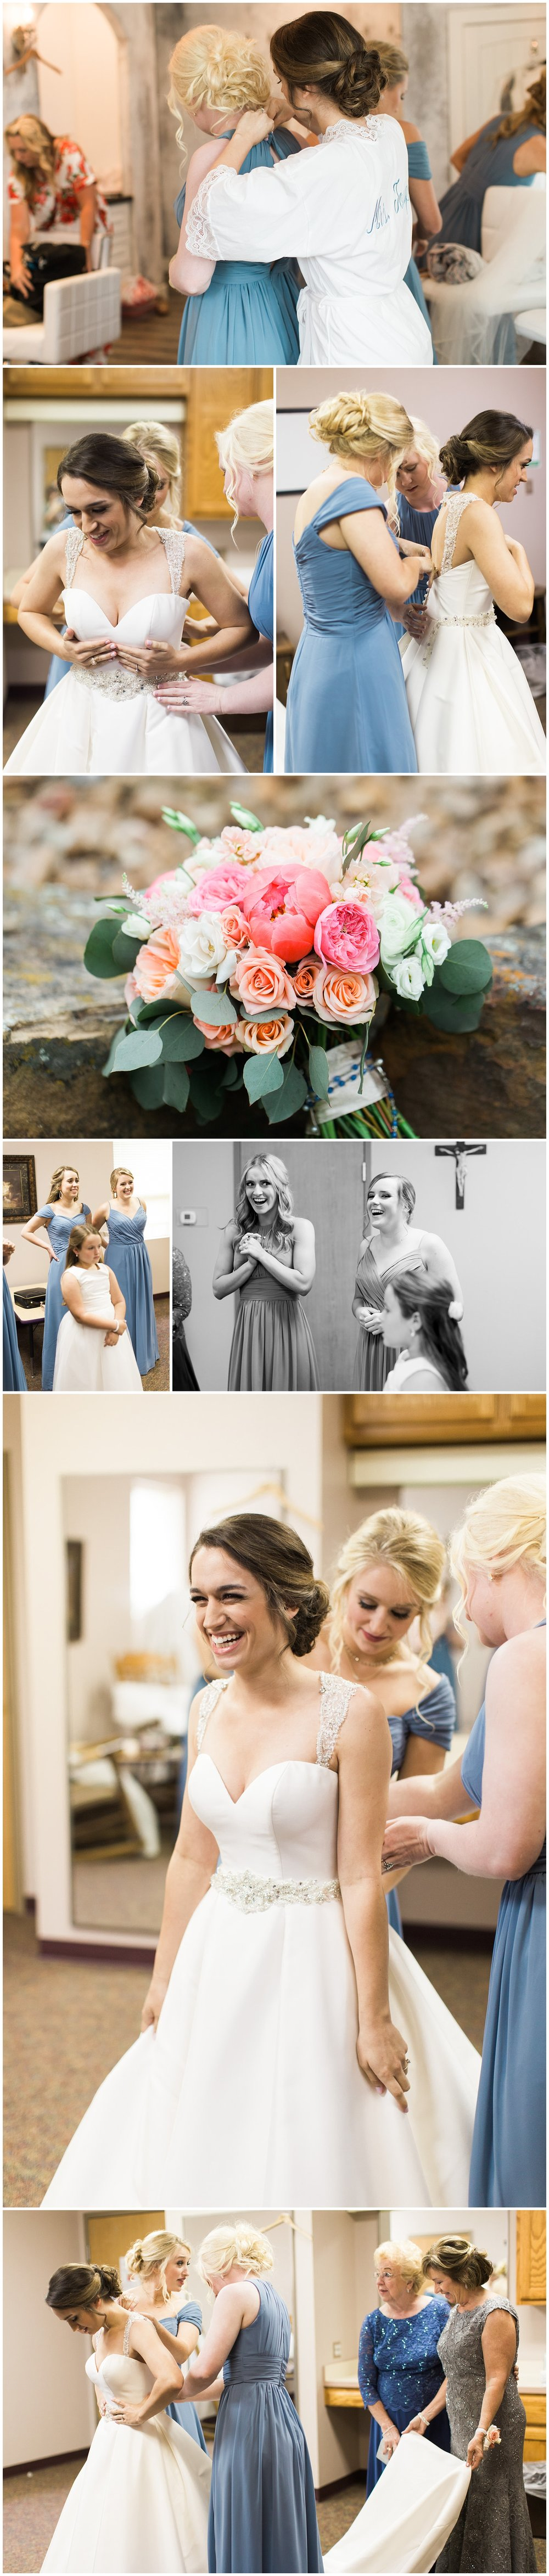 Brownstone_Reserve_Wedding_Kristina_Ross_Photography_0008.jpg